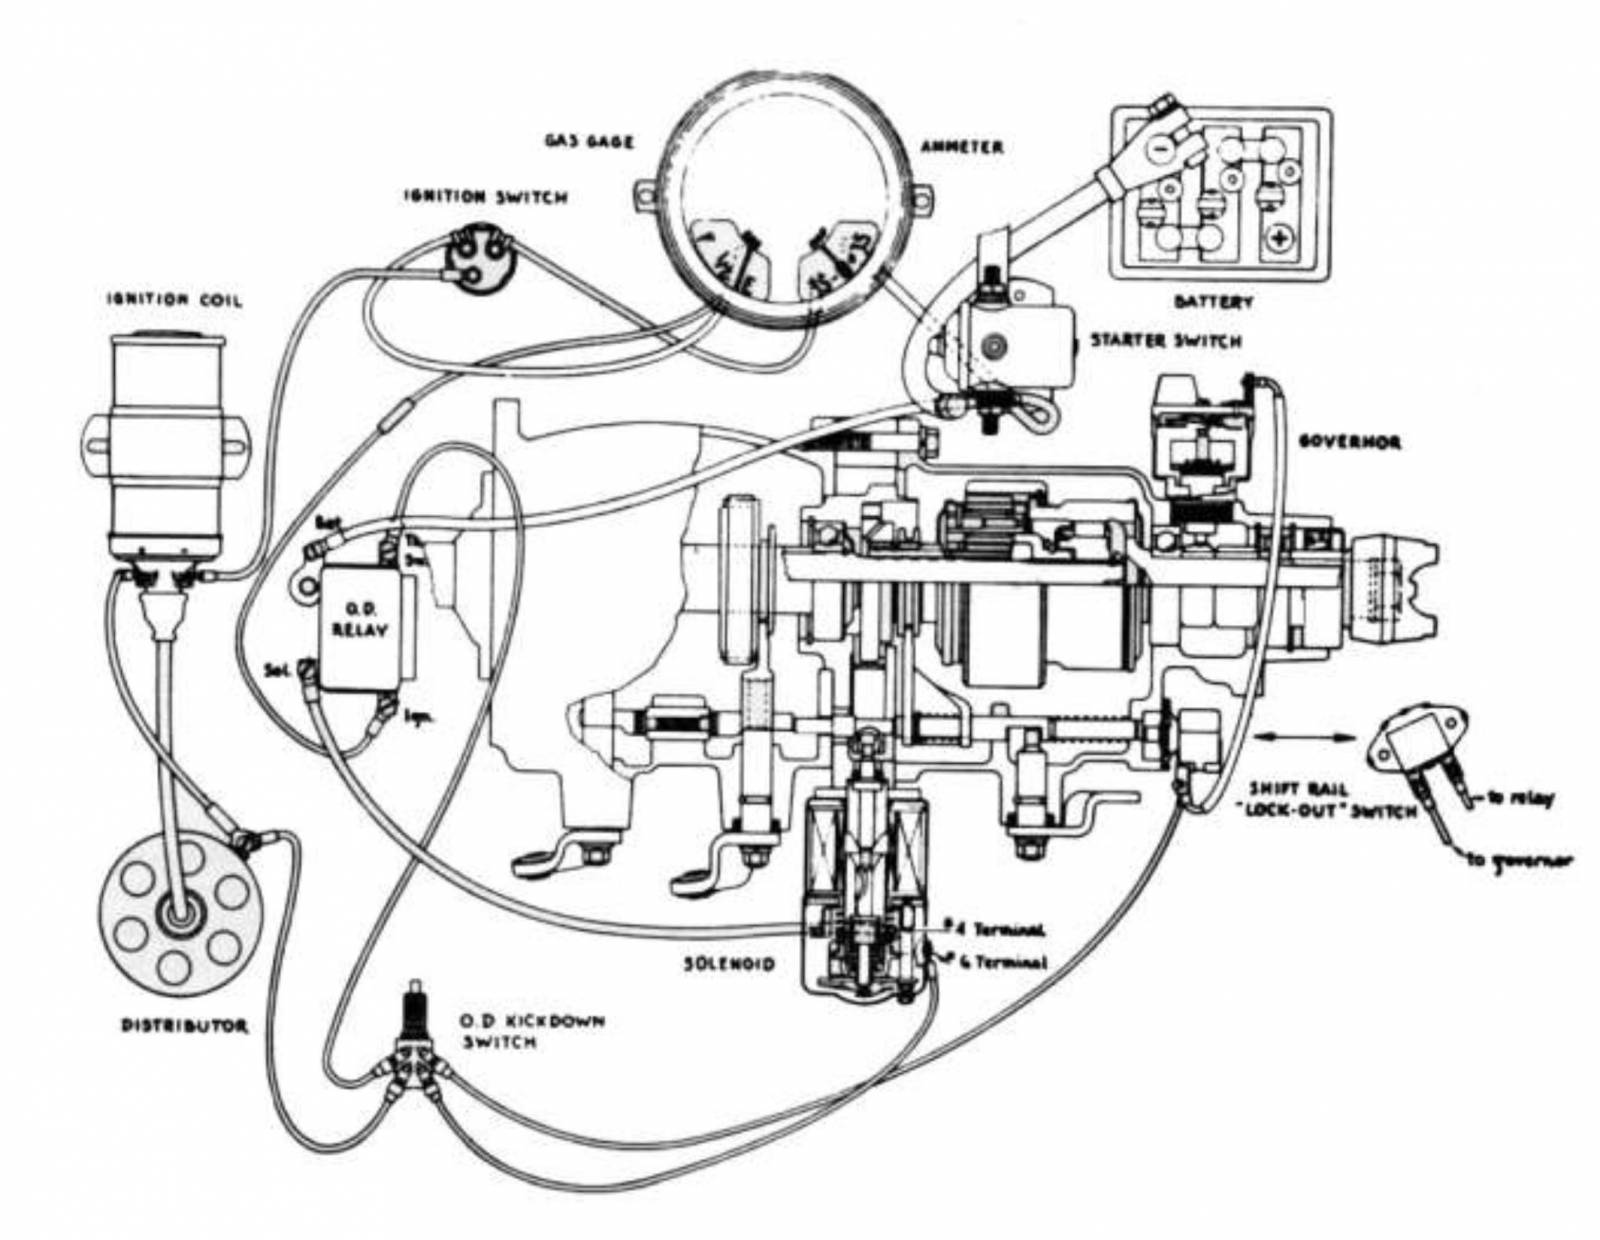 1953 ford overdrive wiring wiring diagram on the net 0722] 1953 ford overdrive wiring